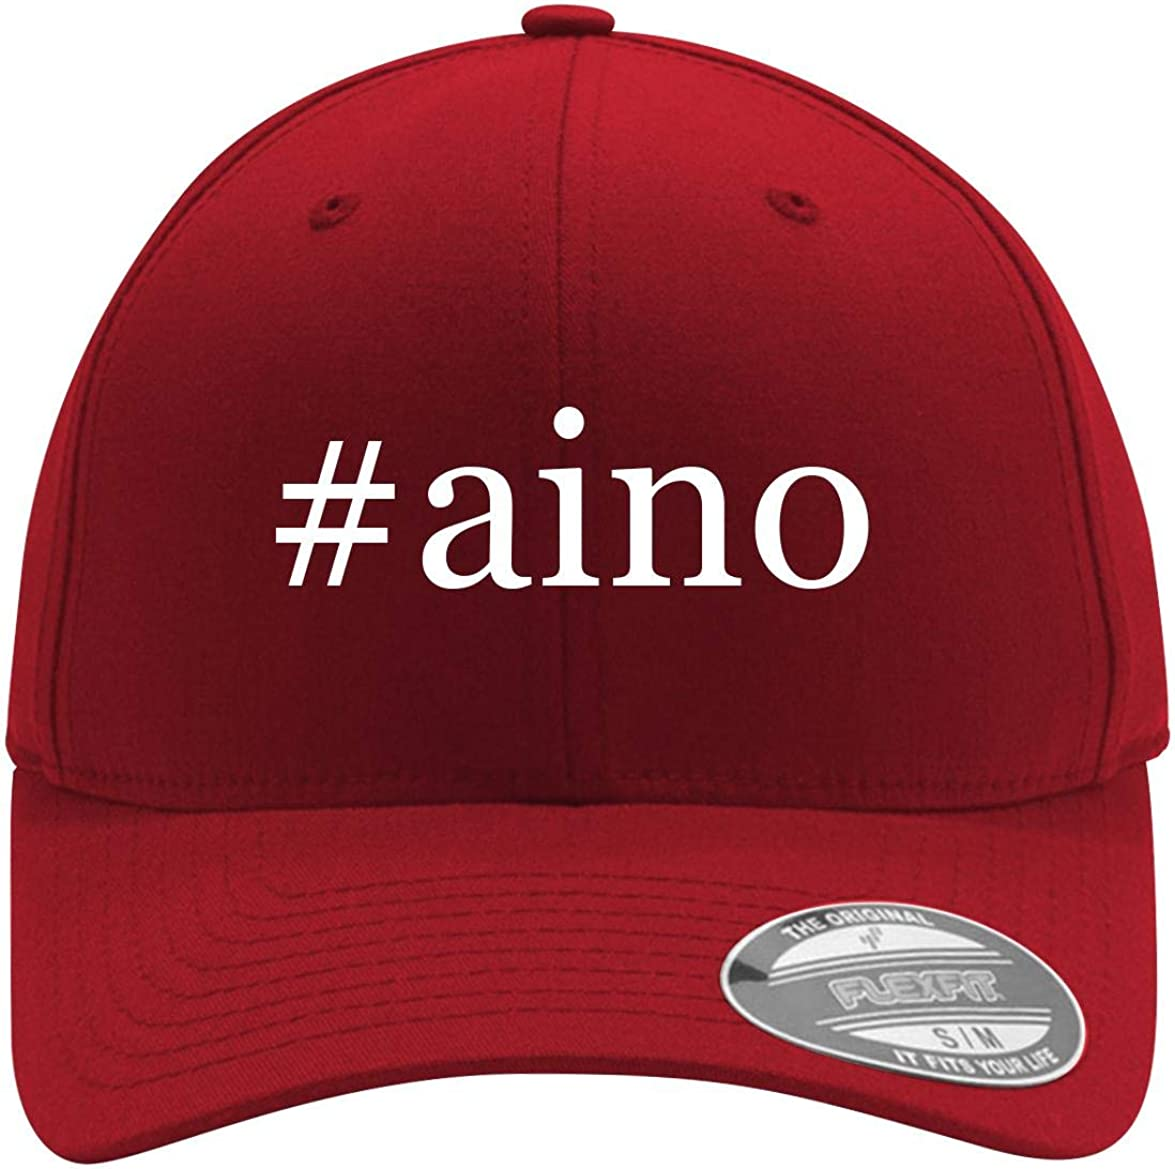 #Aino - Adult Men's Hashtag Flexfit Baseball Hat Cap 61E-ndvulRL